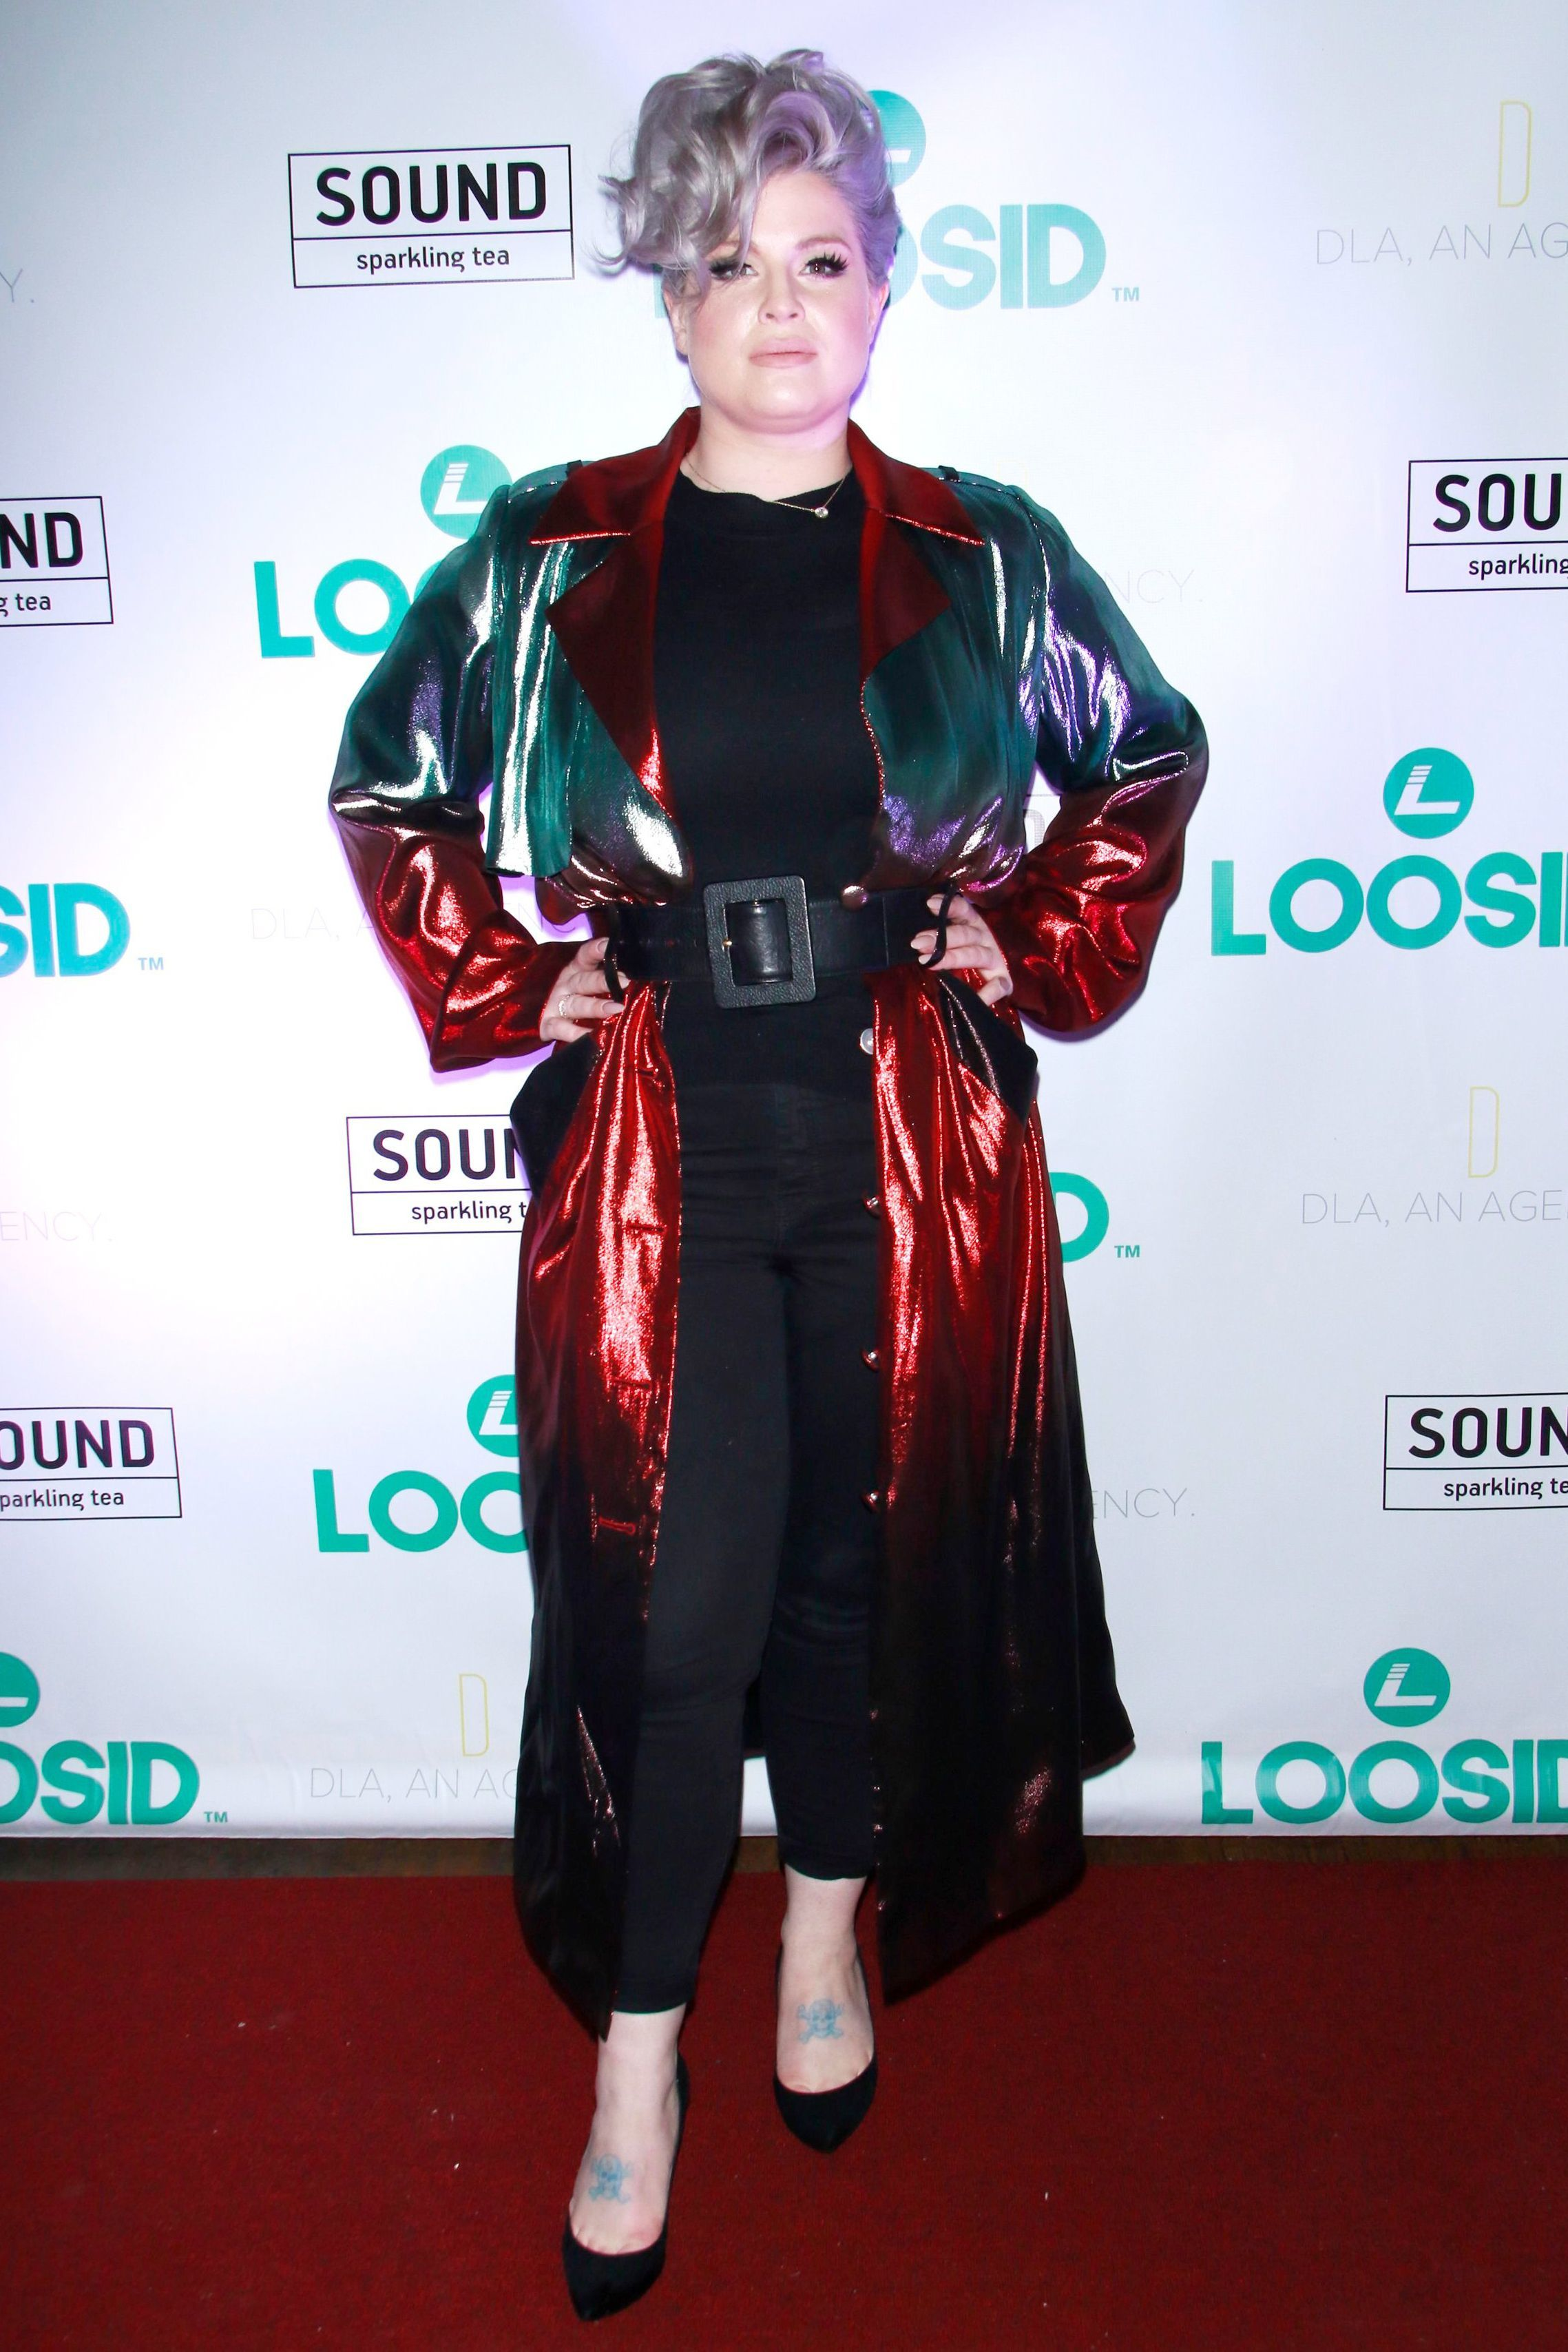 Kelly Osbourne attends the Loosid Sober Living App launch event in New York City on Nov. 15, 2018.